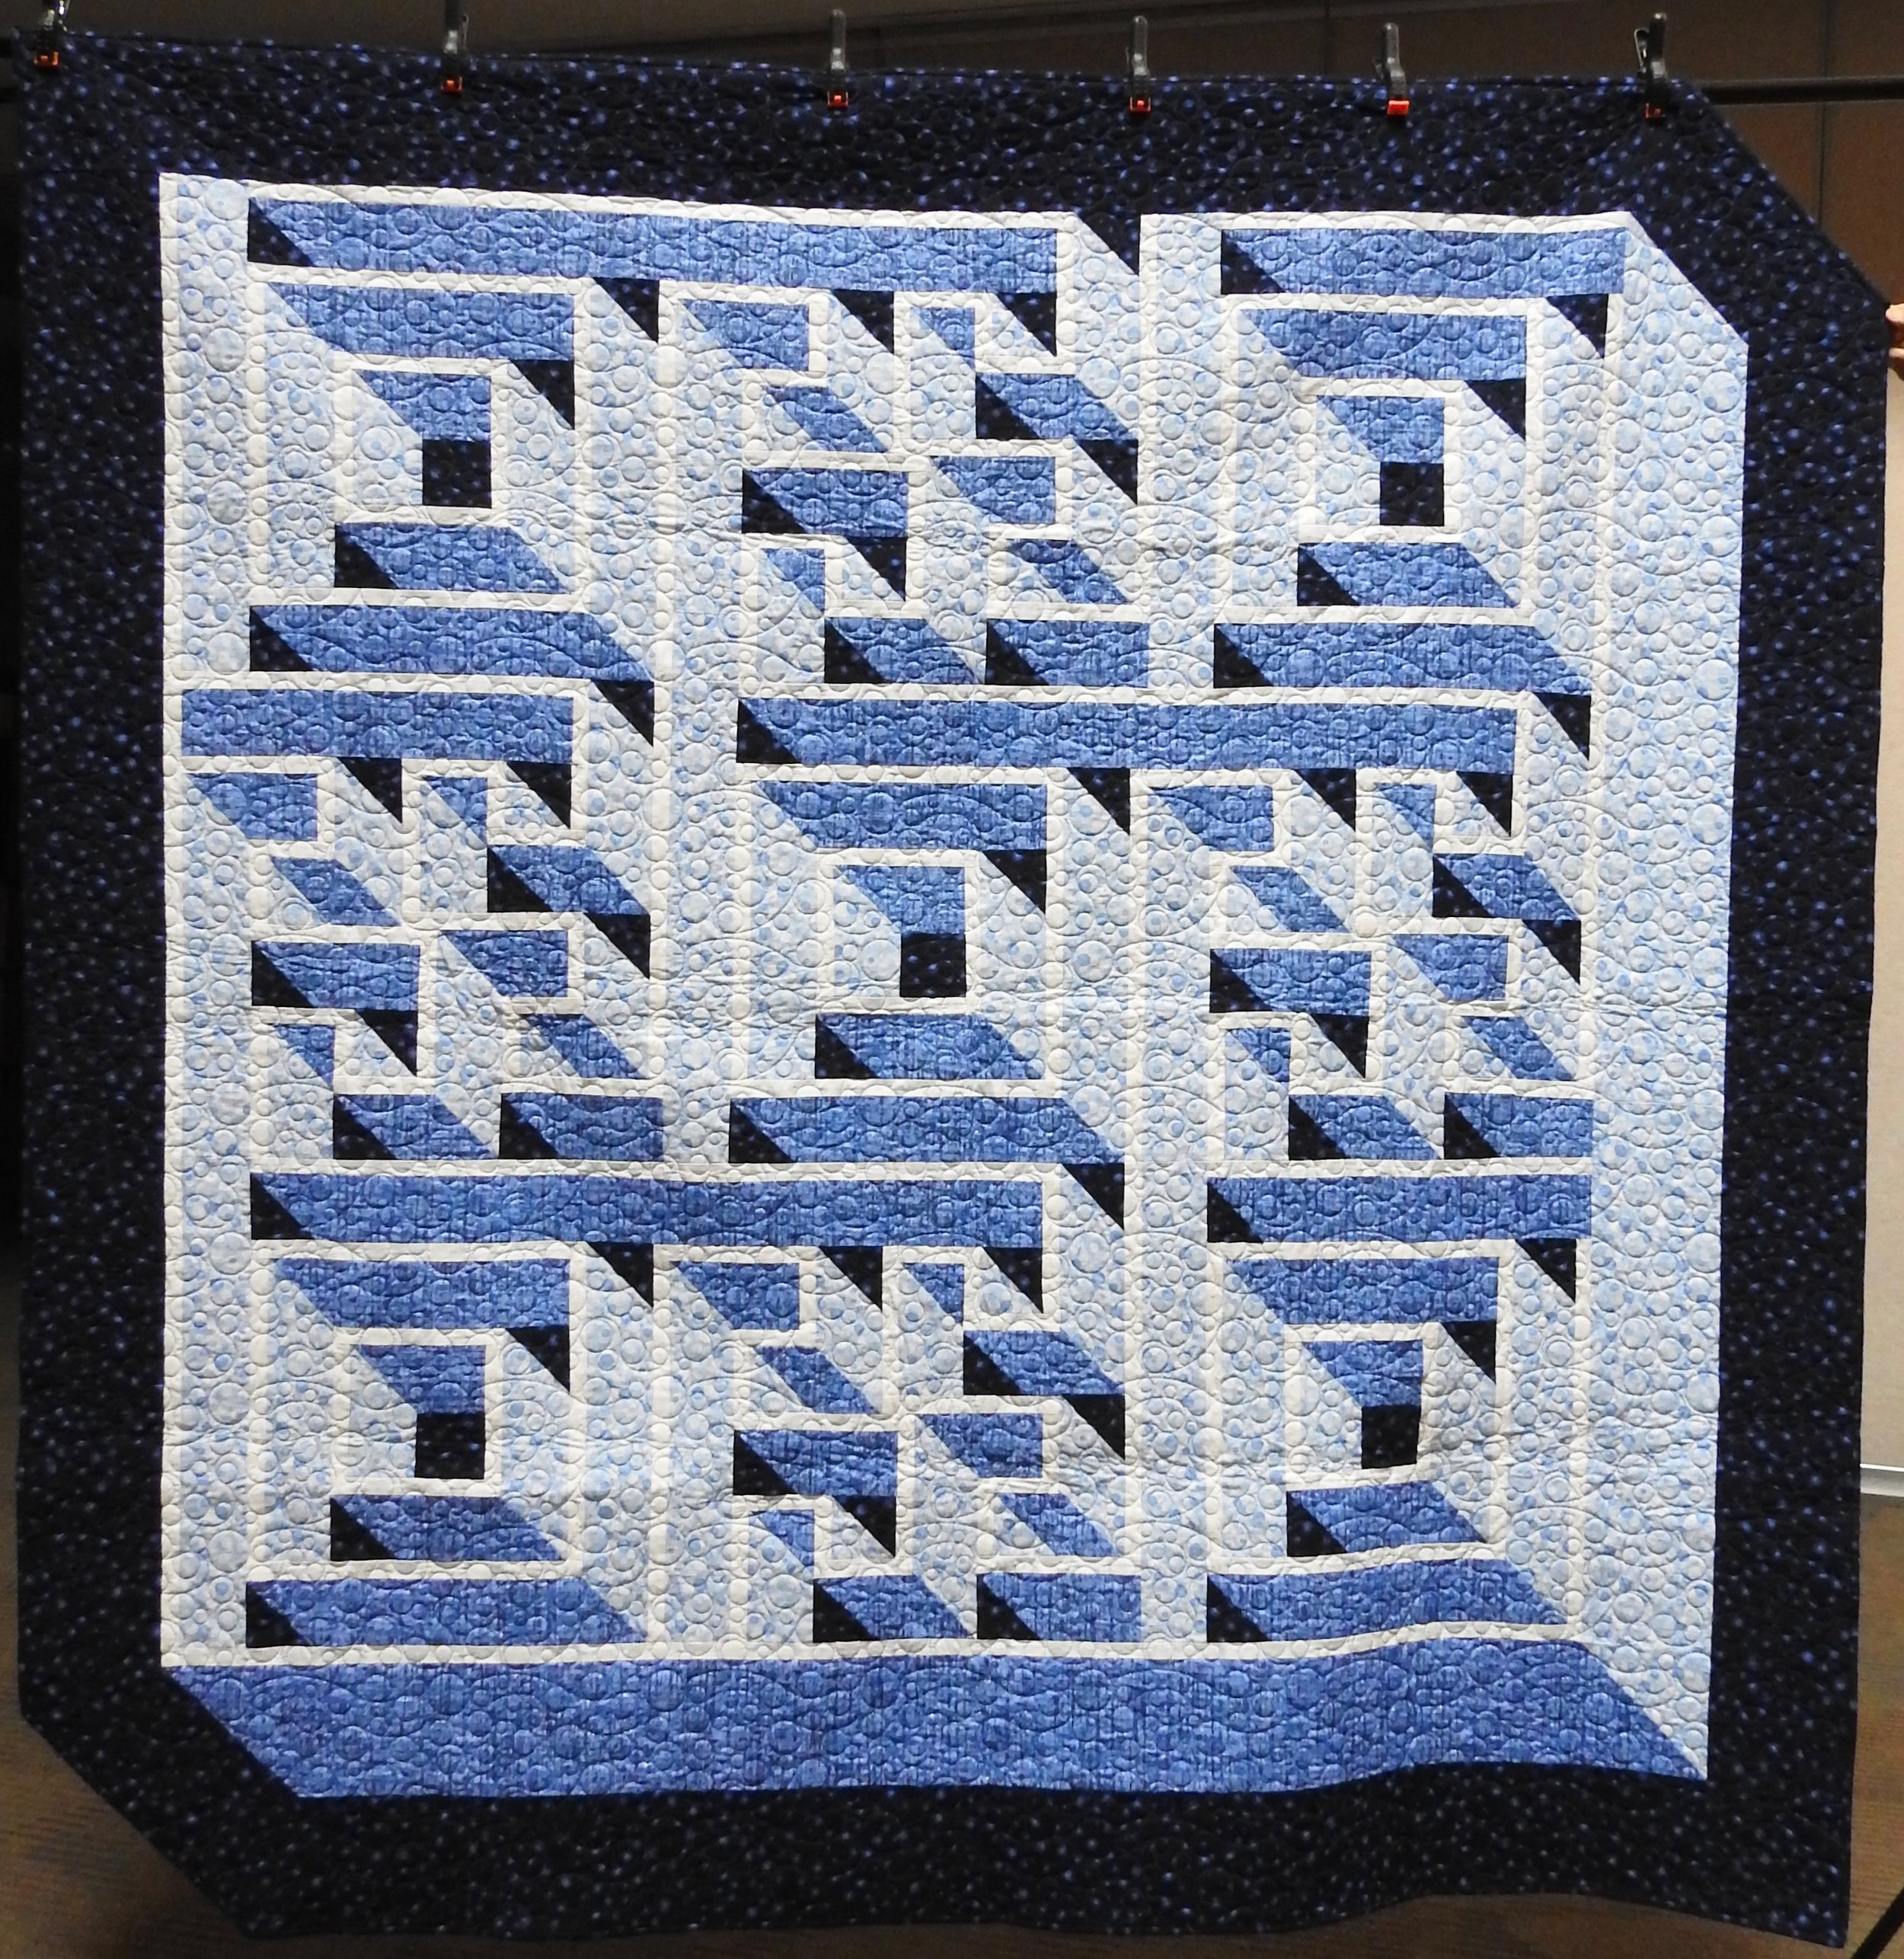 Labyrinth, Pieced by Ruby Bontreger, Edge to Edge Machine Quilted, Signed & Dated, donated by First Mennonite, Middlebury, 83 x 83""